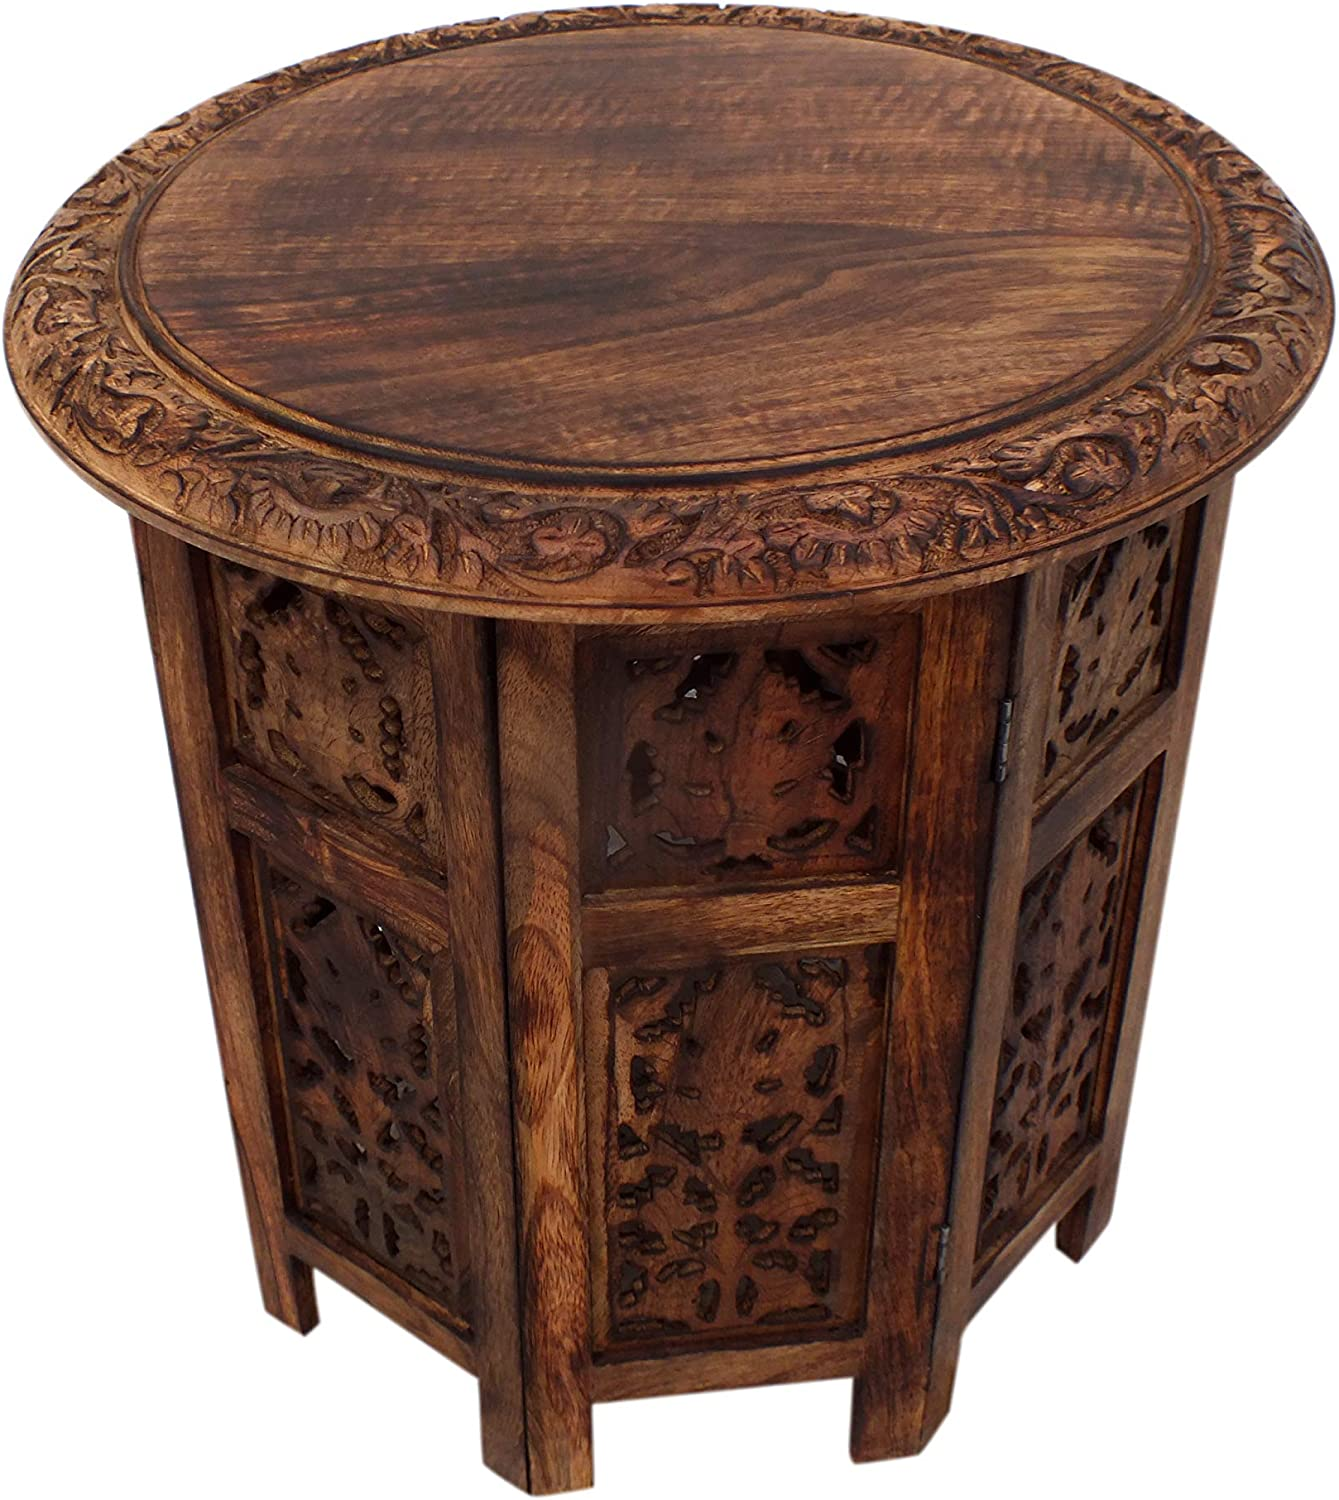 The Urban Port Wooden Hand Carved Folding Accent Coffee Table, Brown